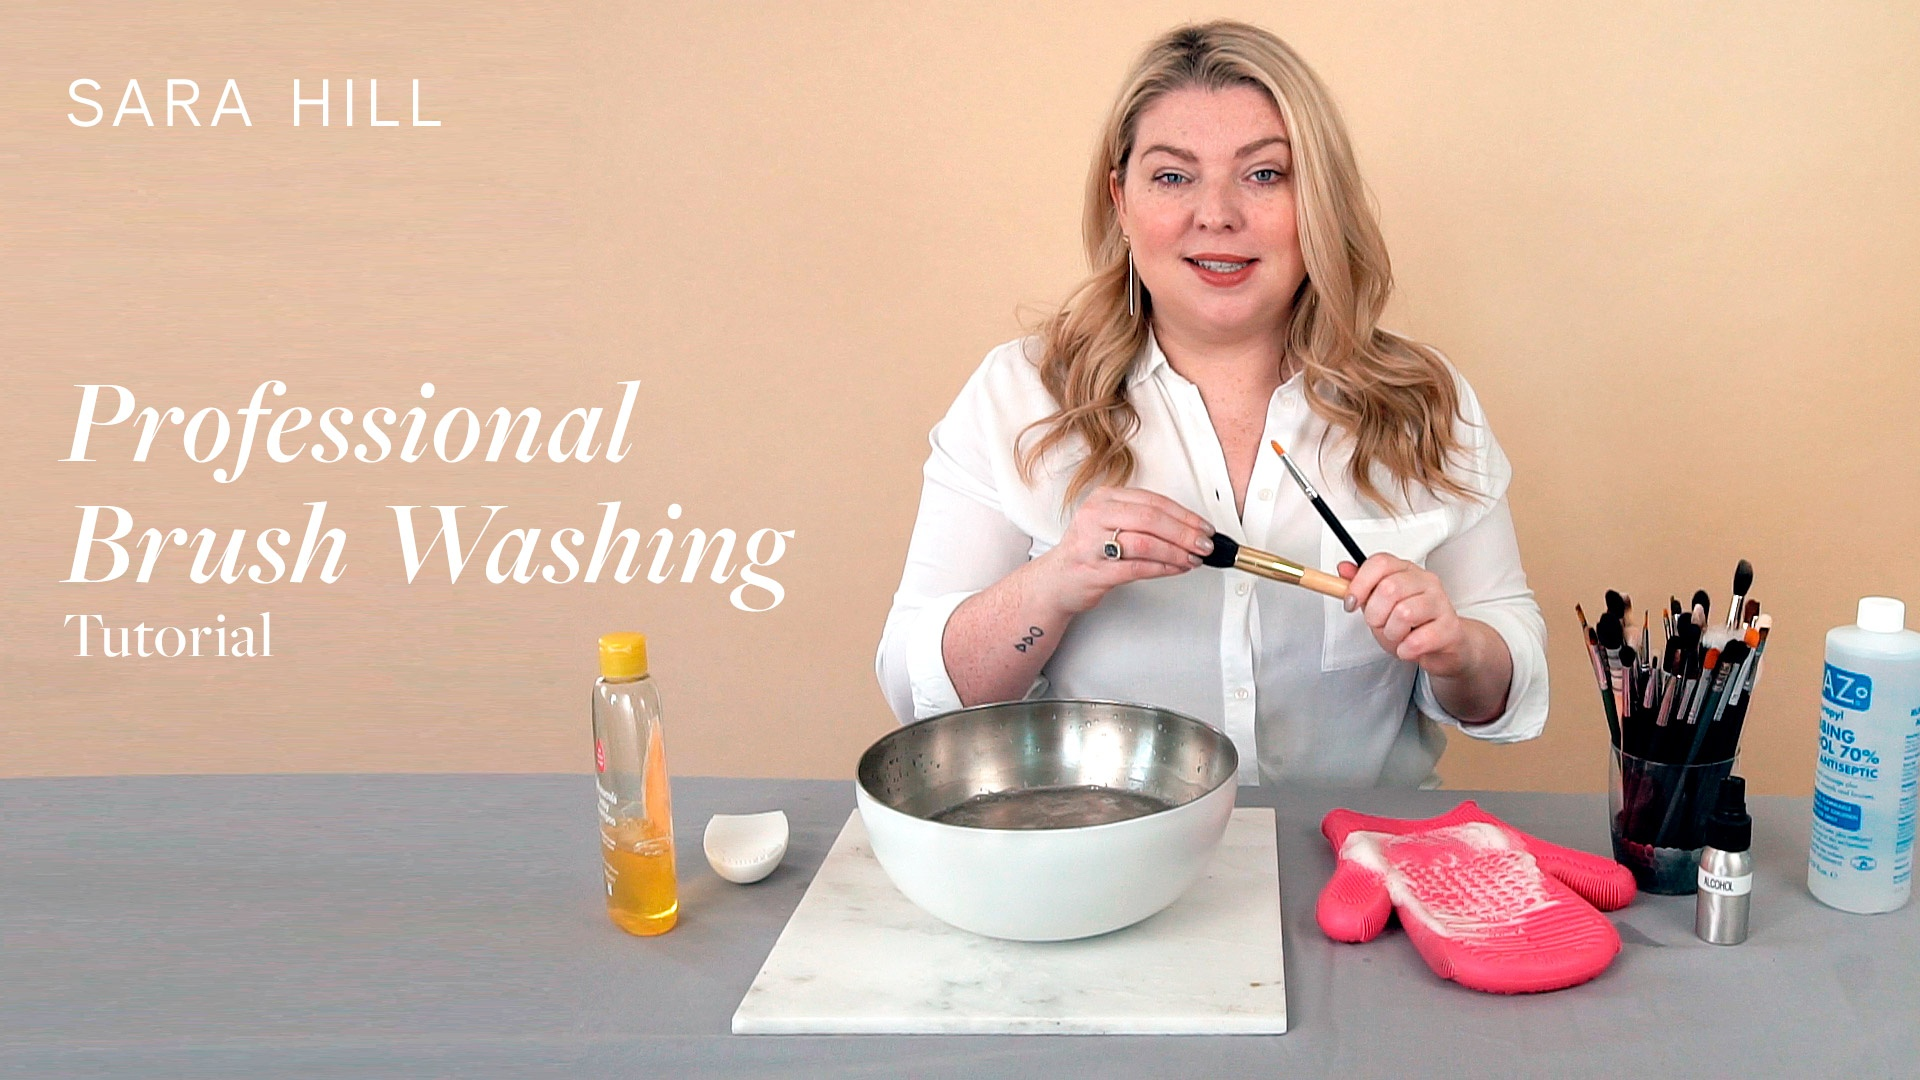 Professional Brush Washing Tutorial